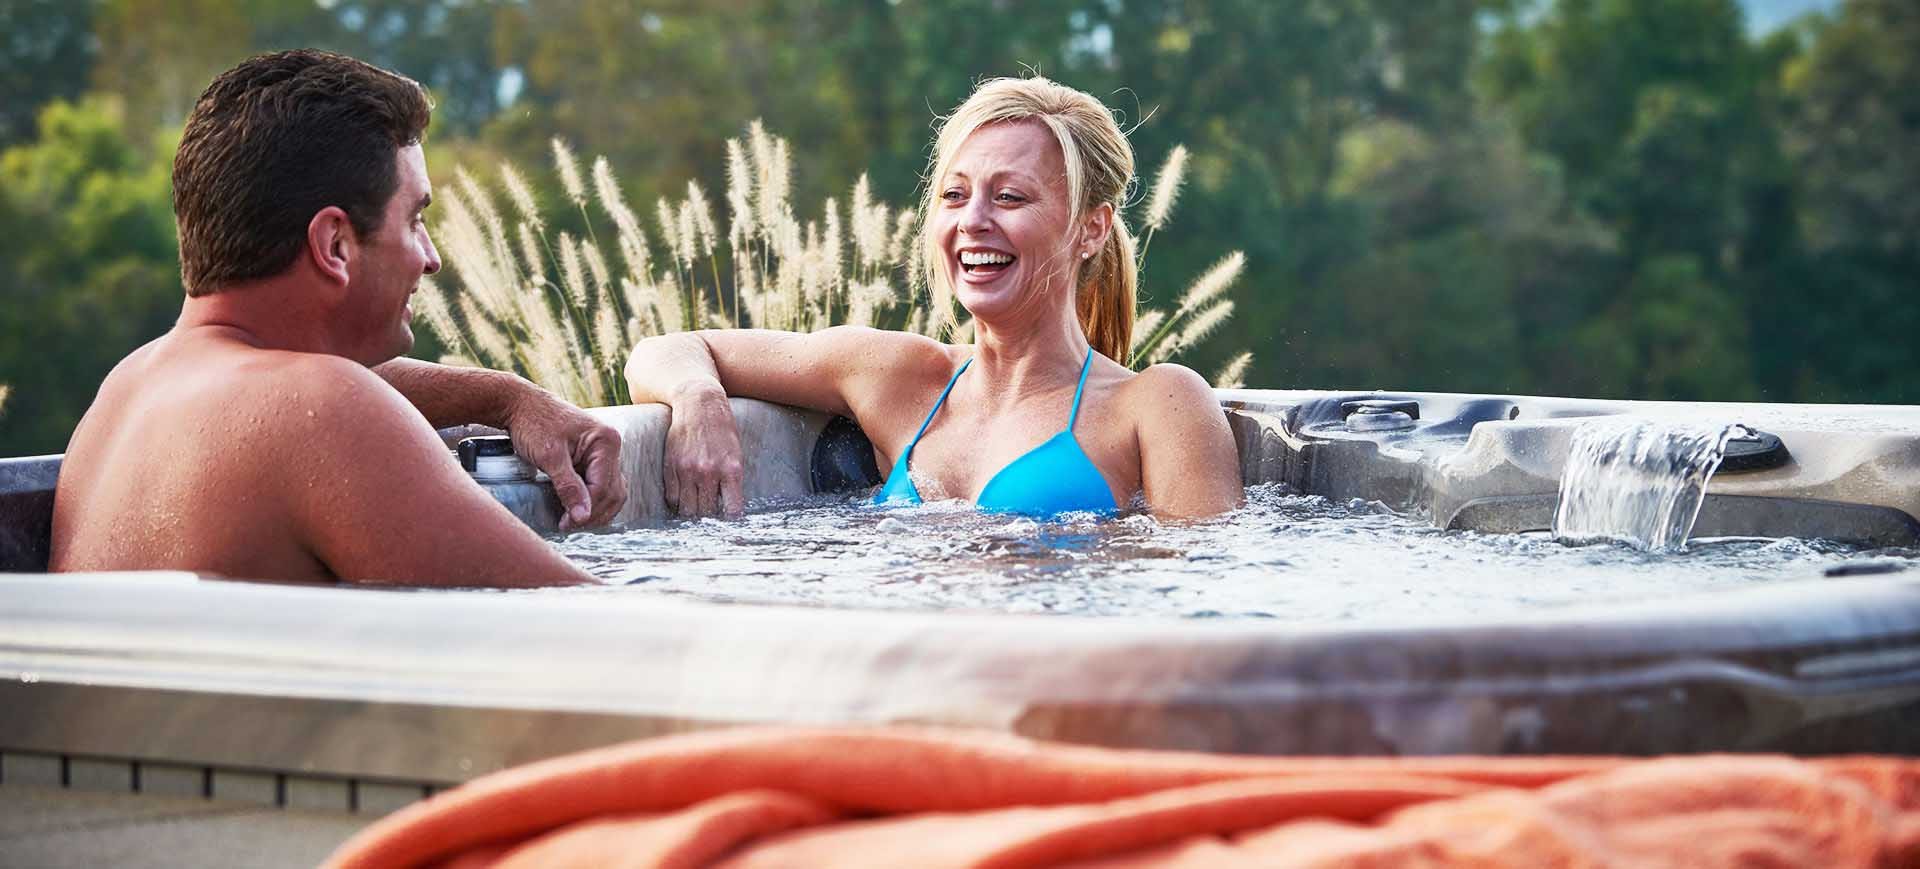 two people soaking in a hot tub